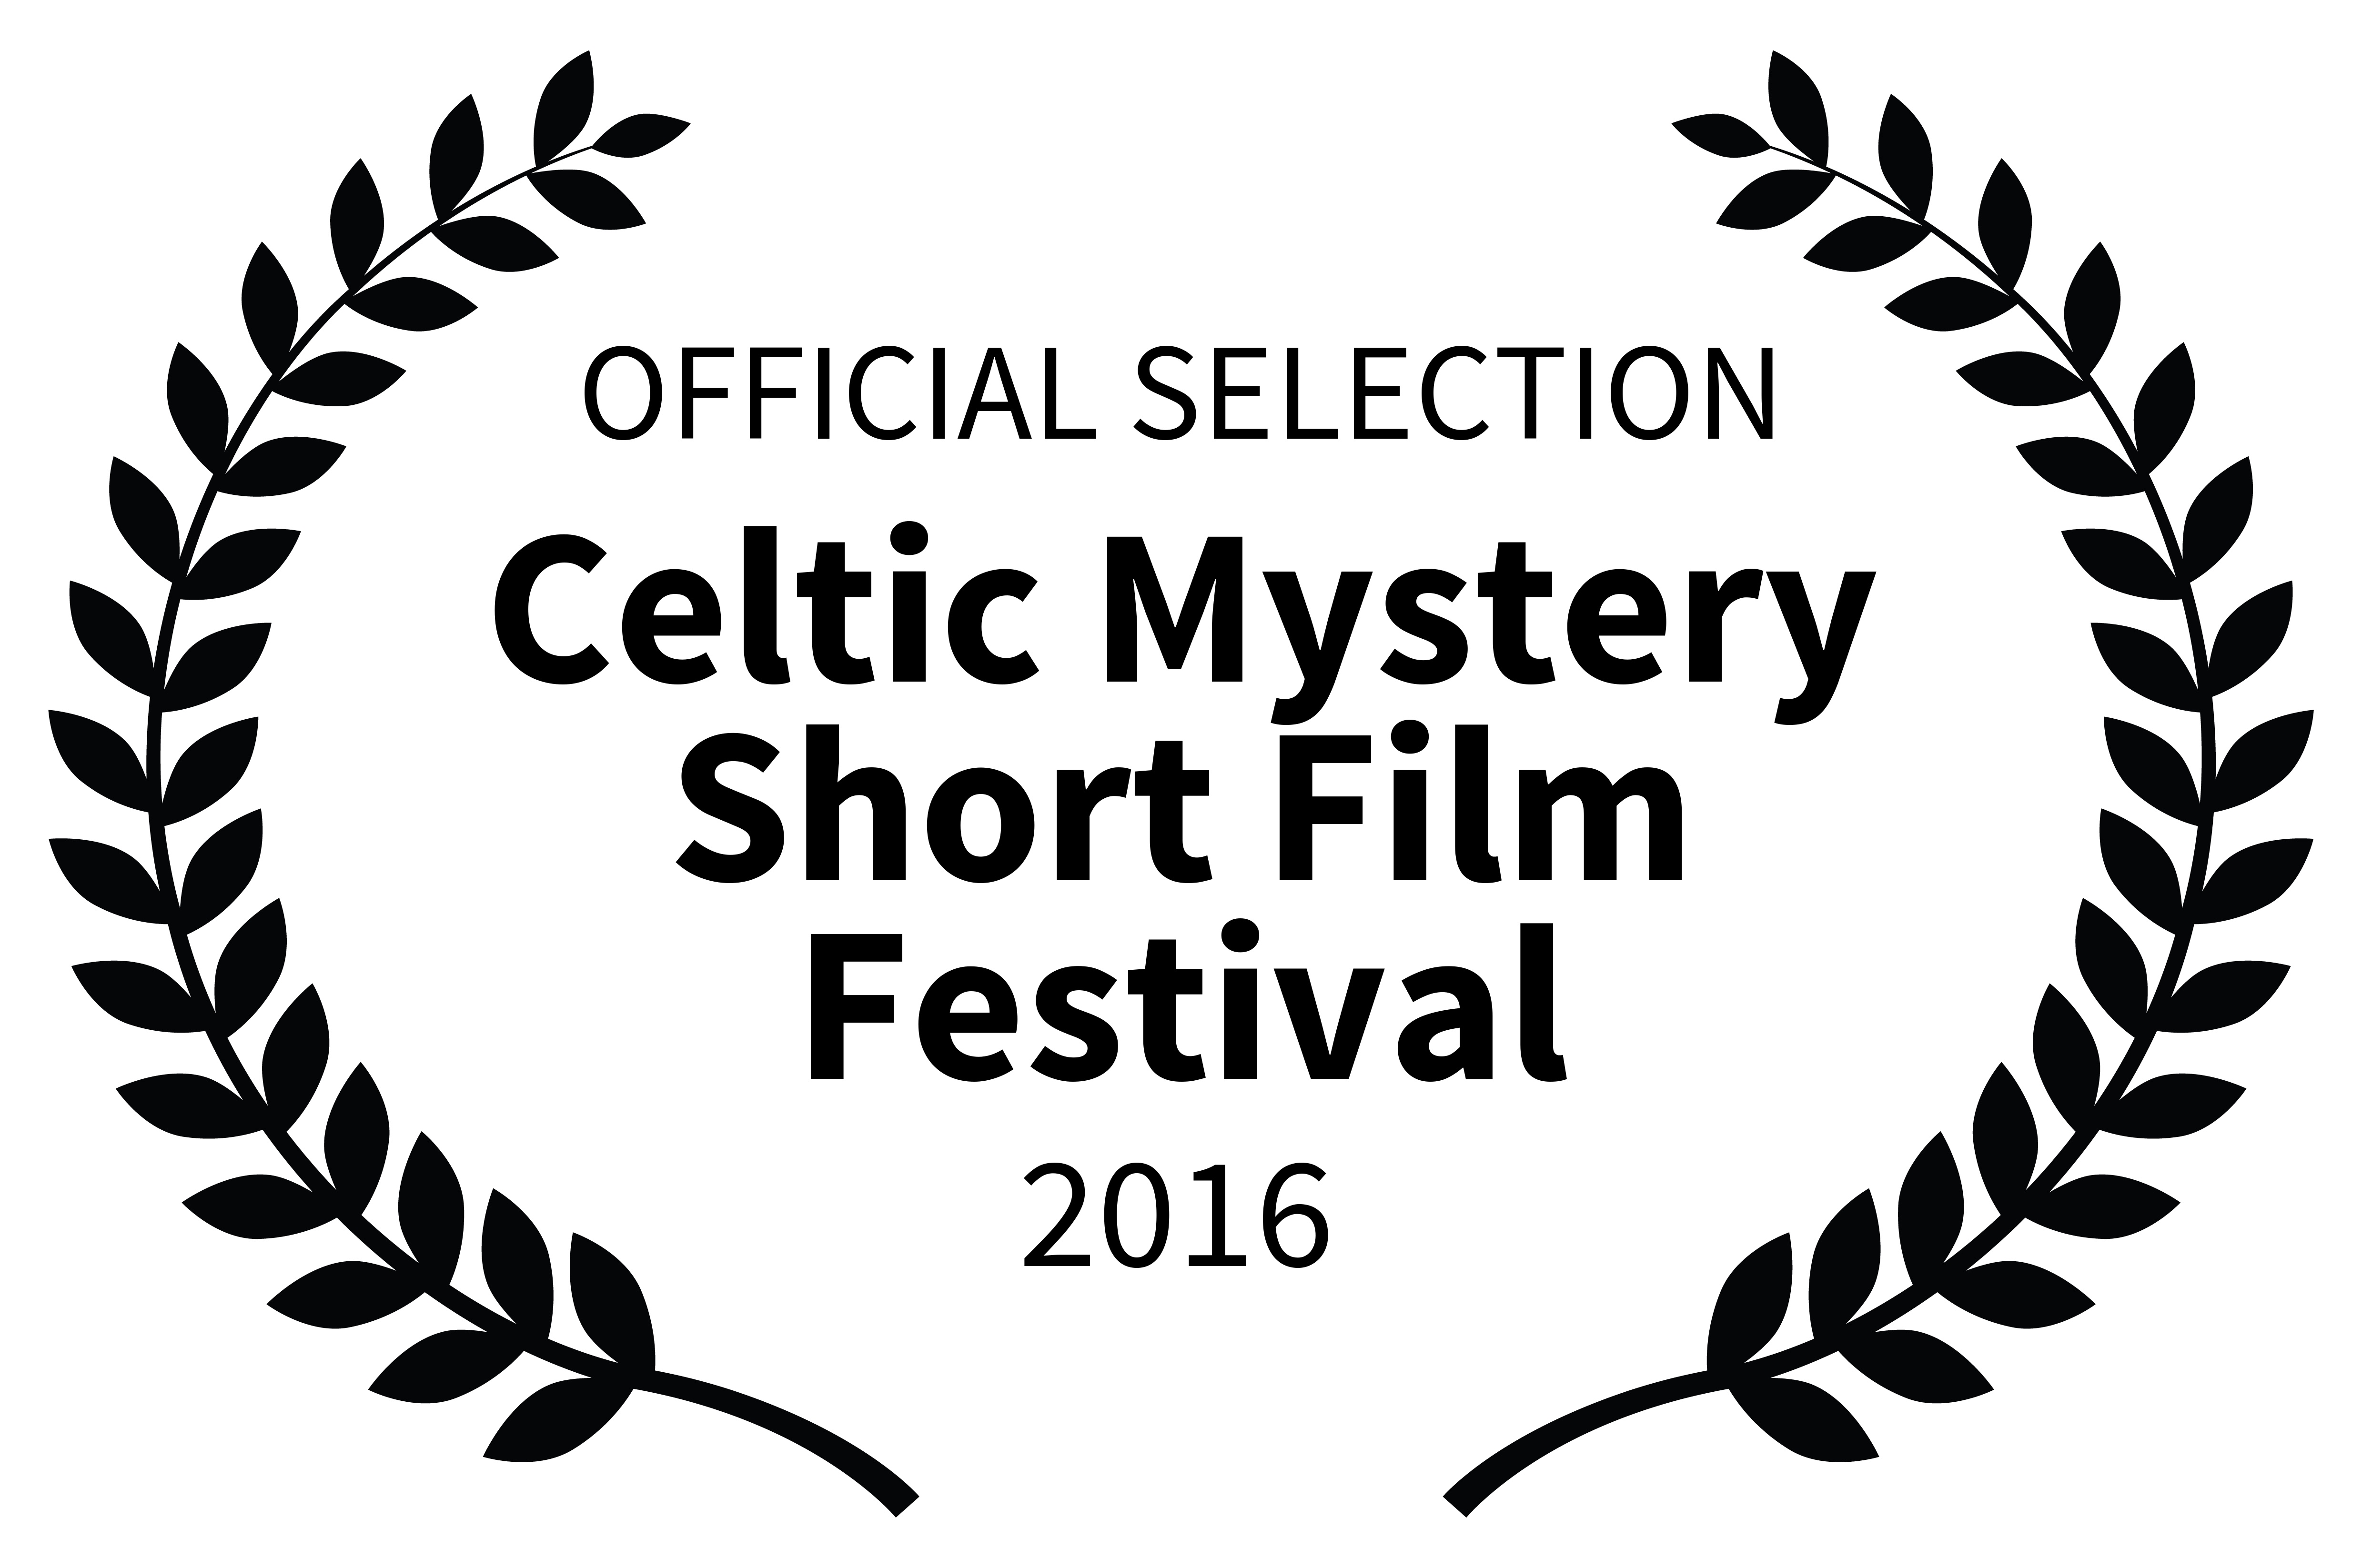 OFFICIALSELECTION-CelticMysteryShortFilmFestival-2016